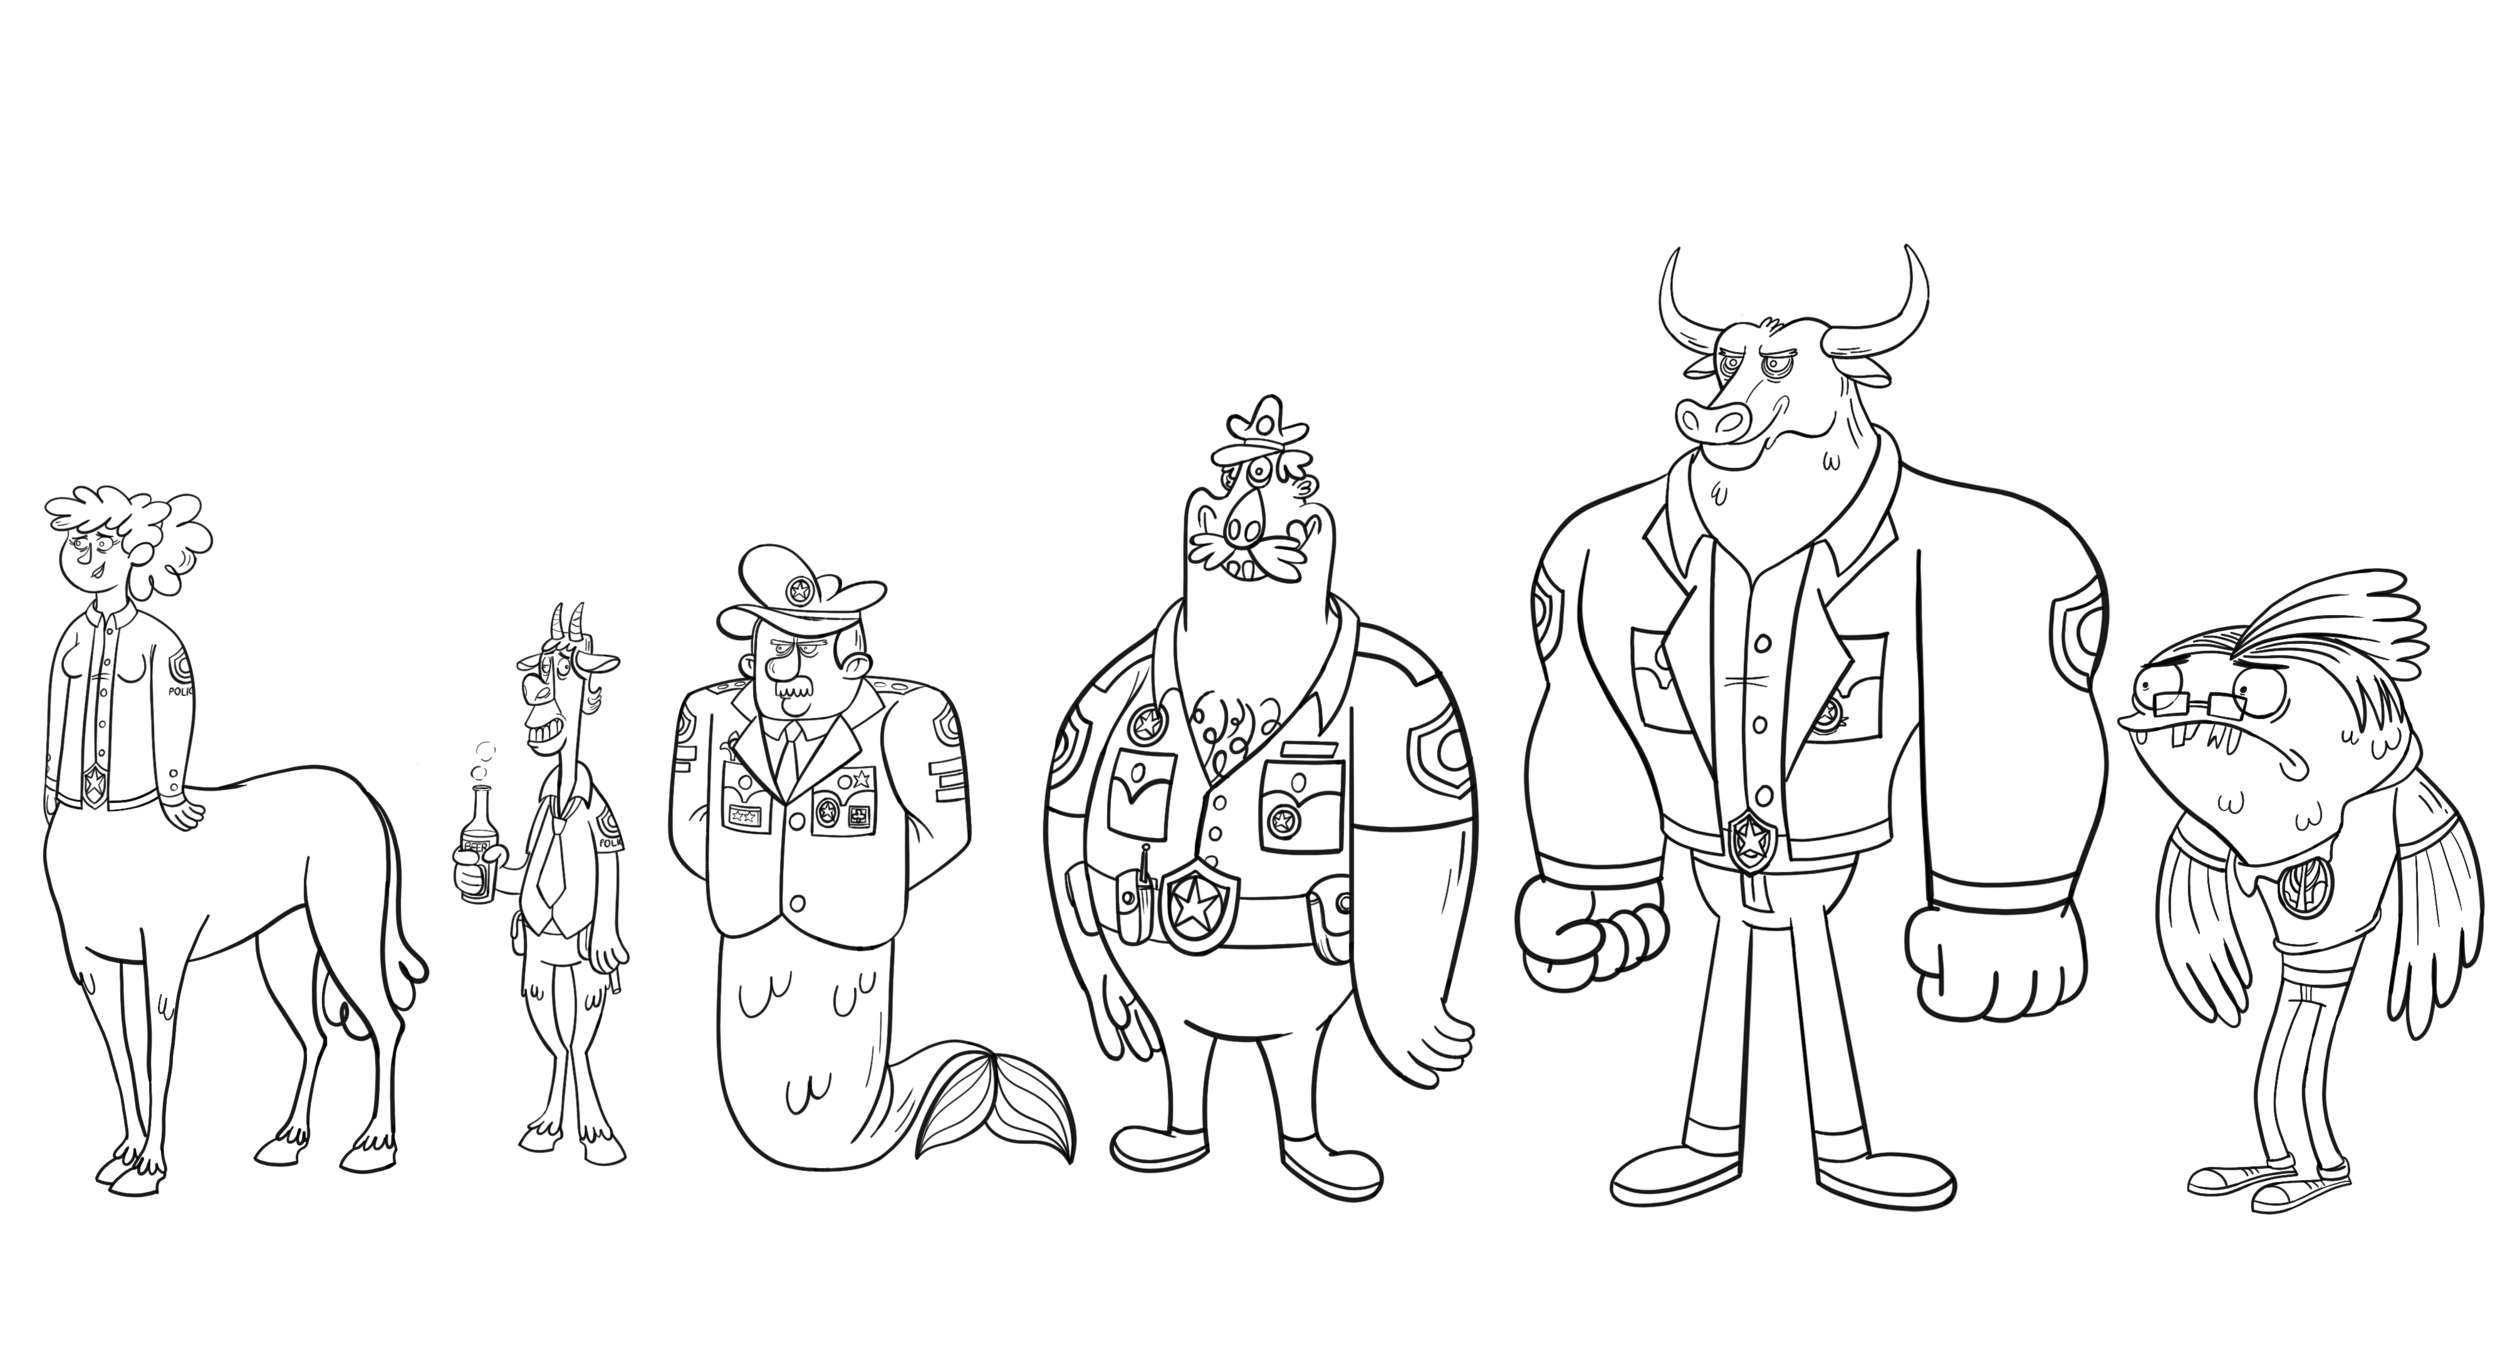 Secondary characters: lineup